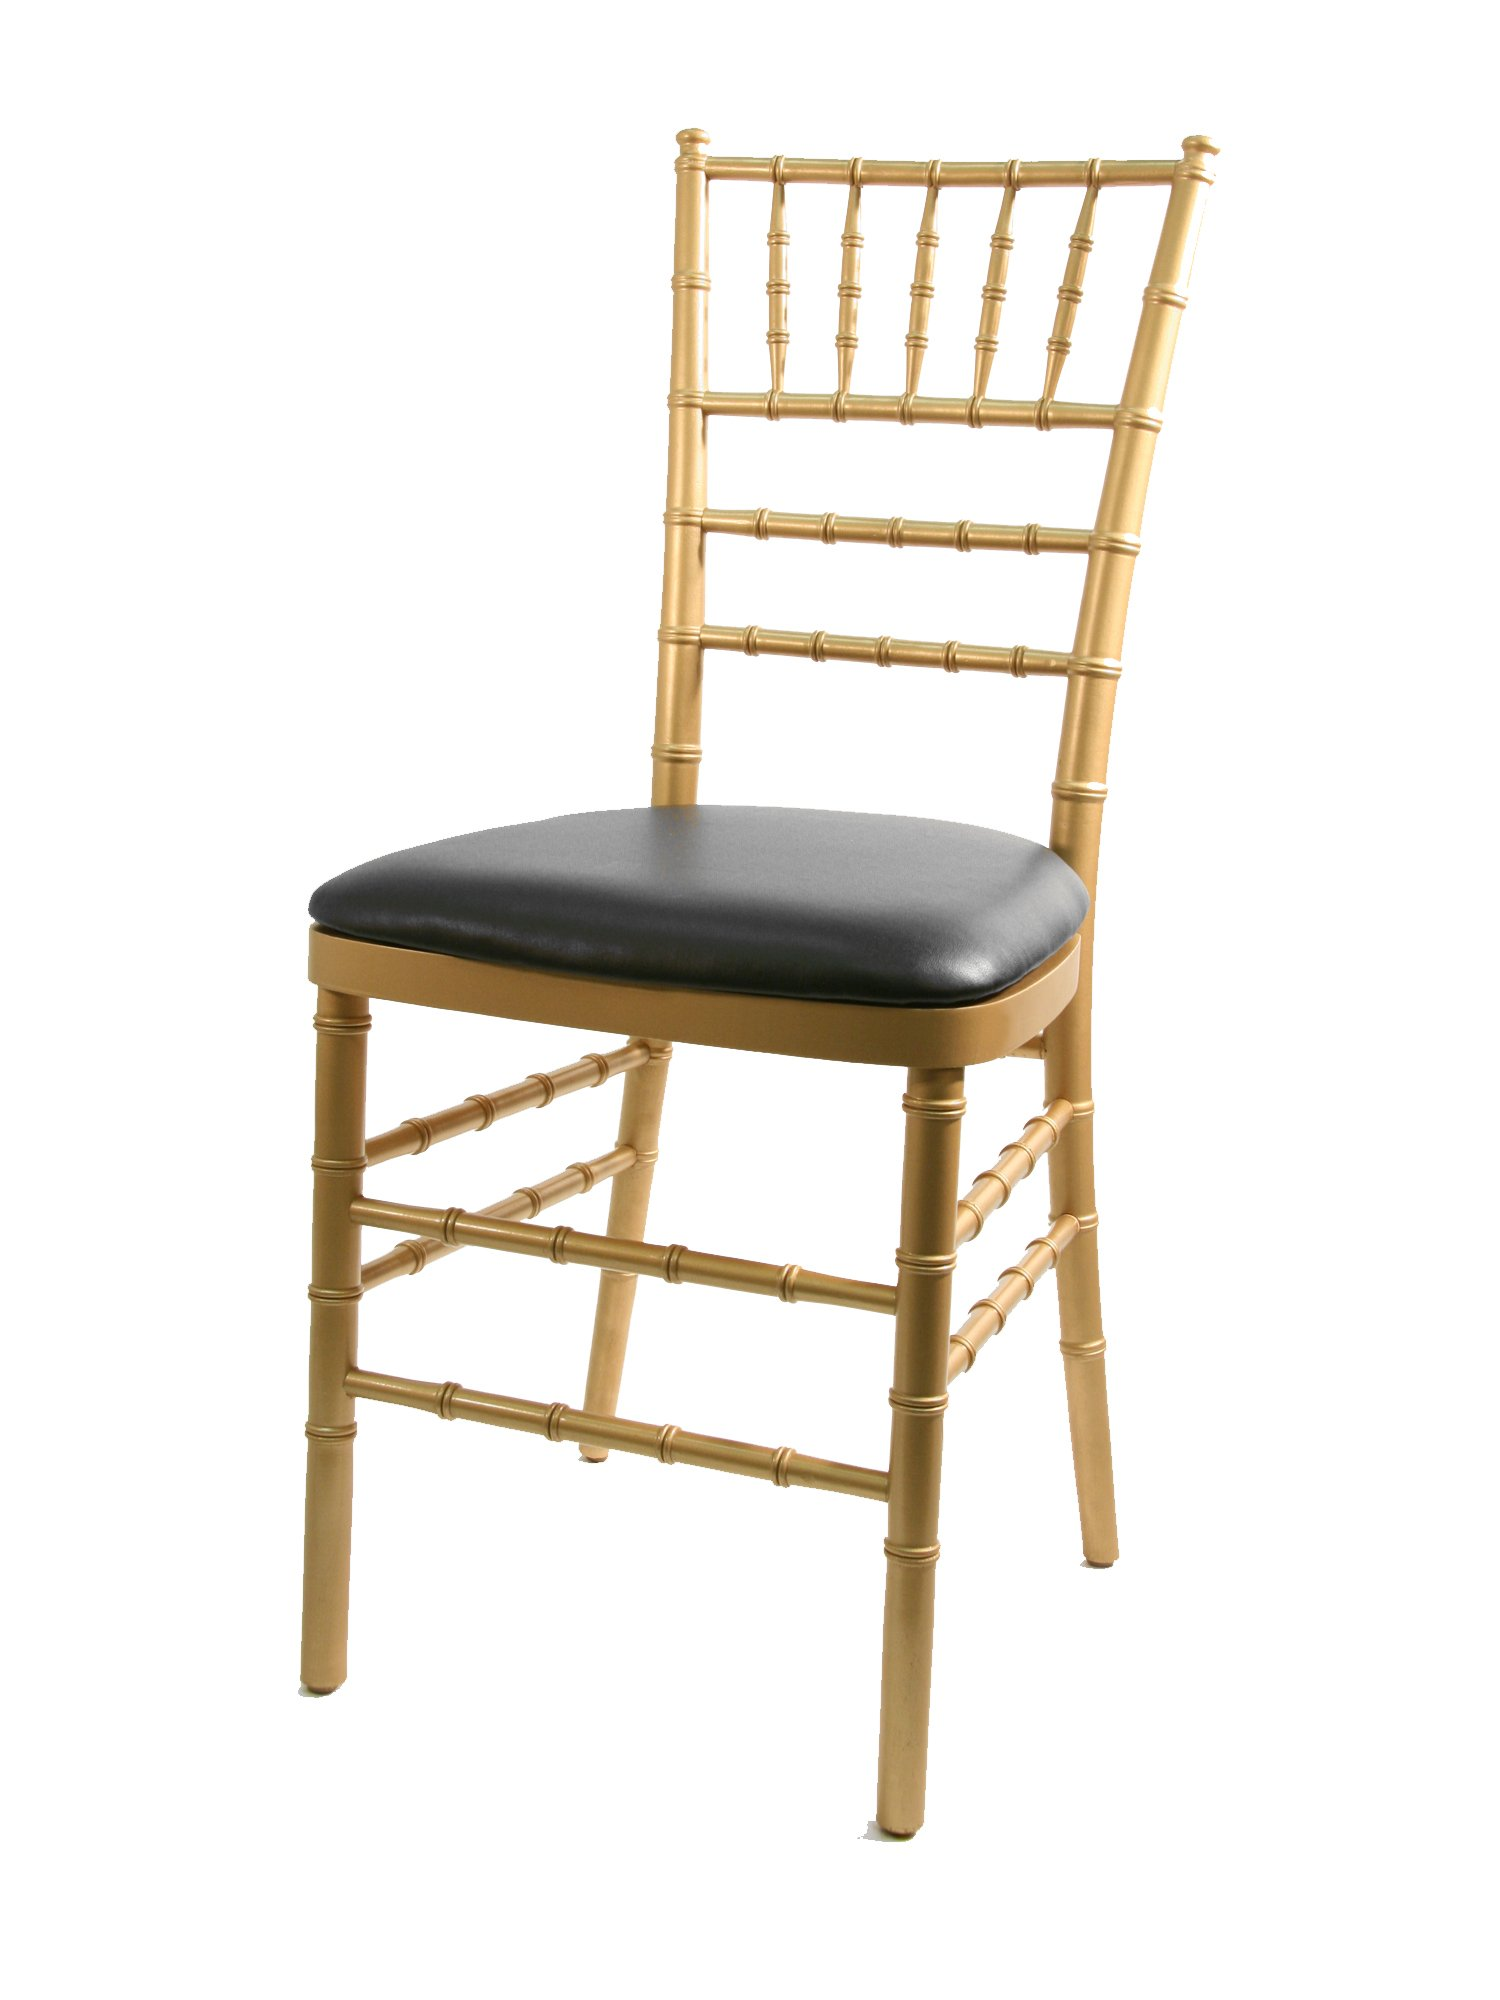 CSP Events CUP-RB-Vinyl-BL Chiavari Chair Wood Panel/Vinyl Cushion, 3'' Height, 15'' Width, 15'' Length, Black